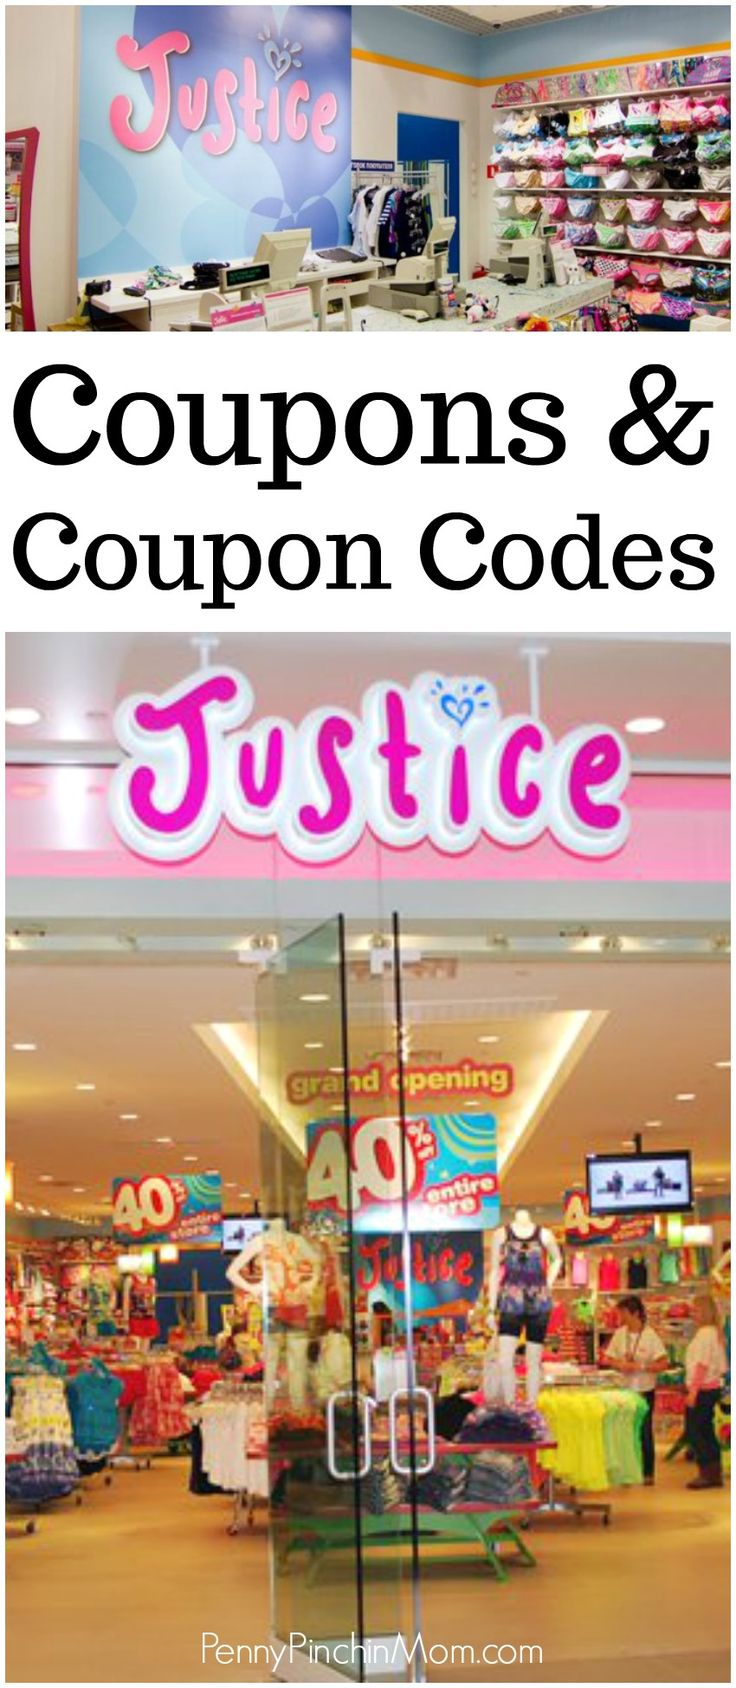 The 25 best justice coupons ideas on pinterest bill the science justice coupons and coupon codes fandeluxe Choice Image